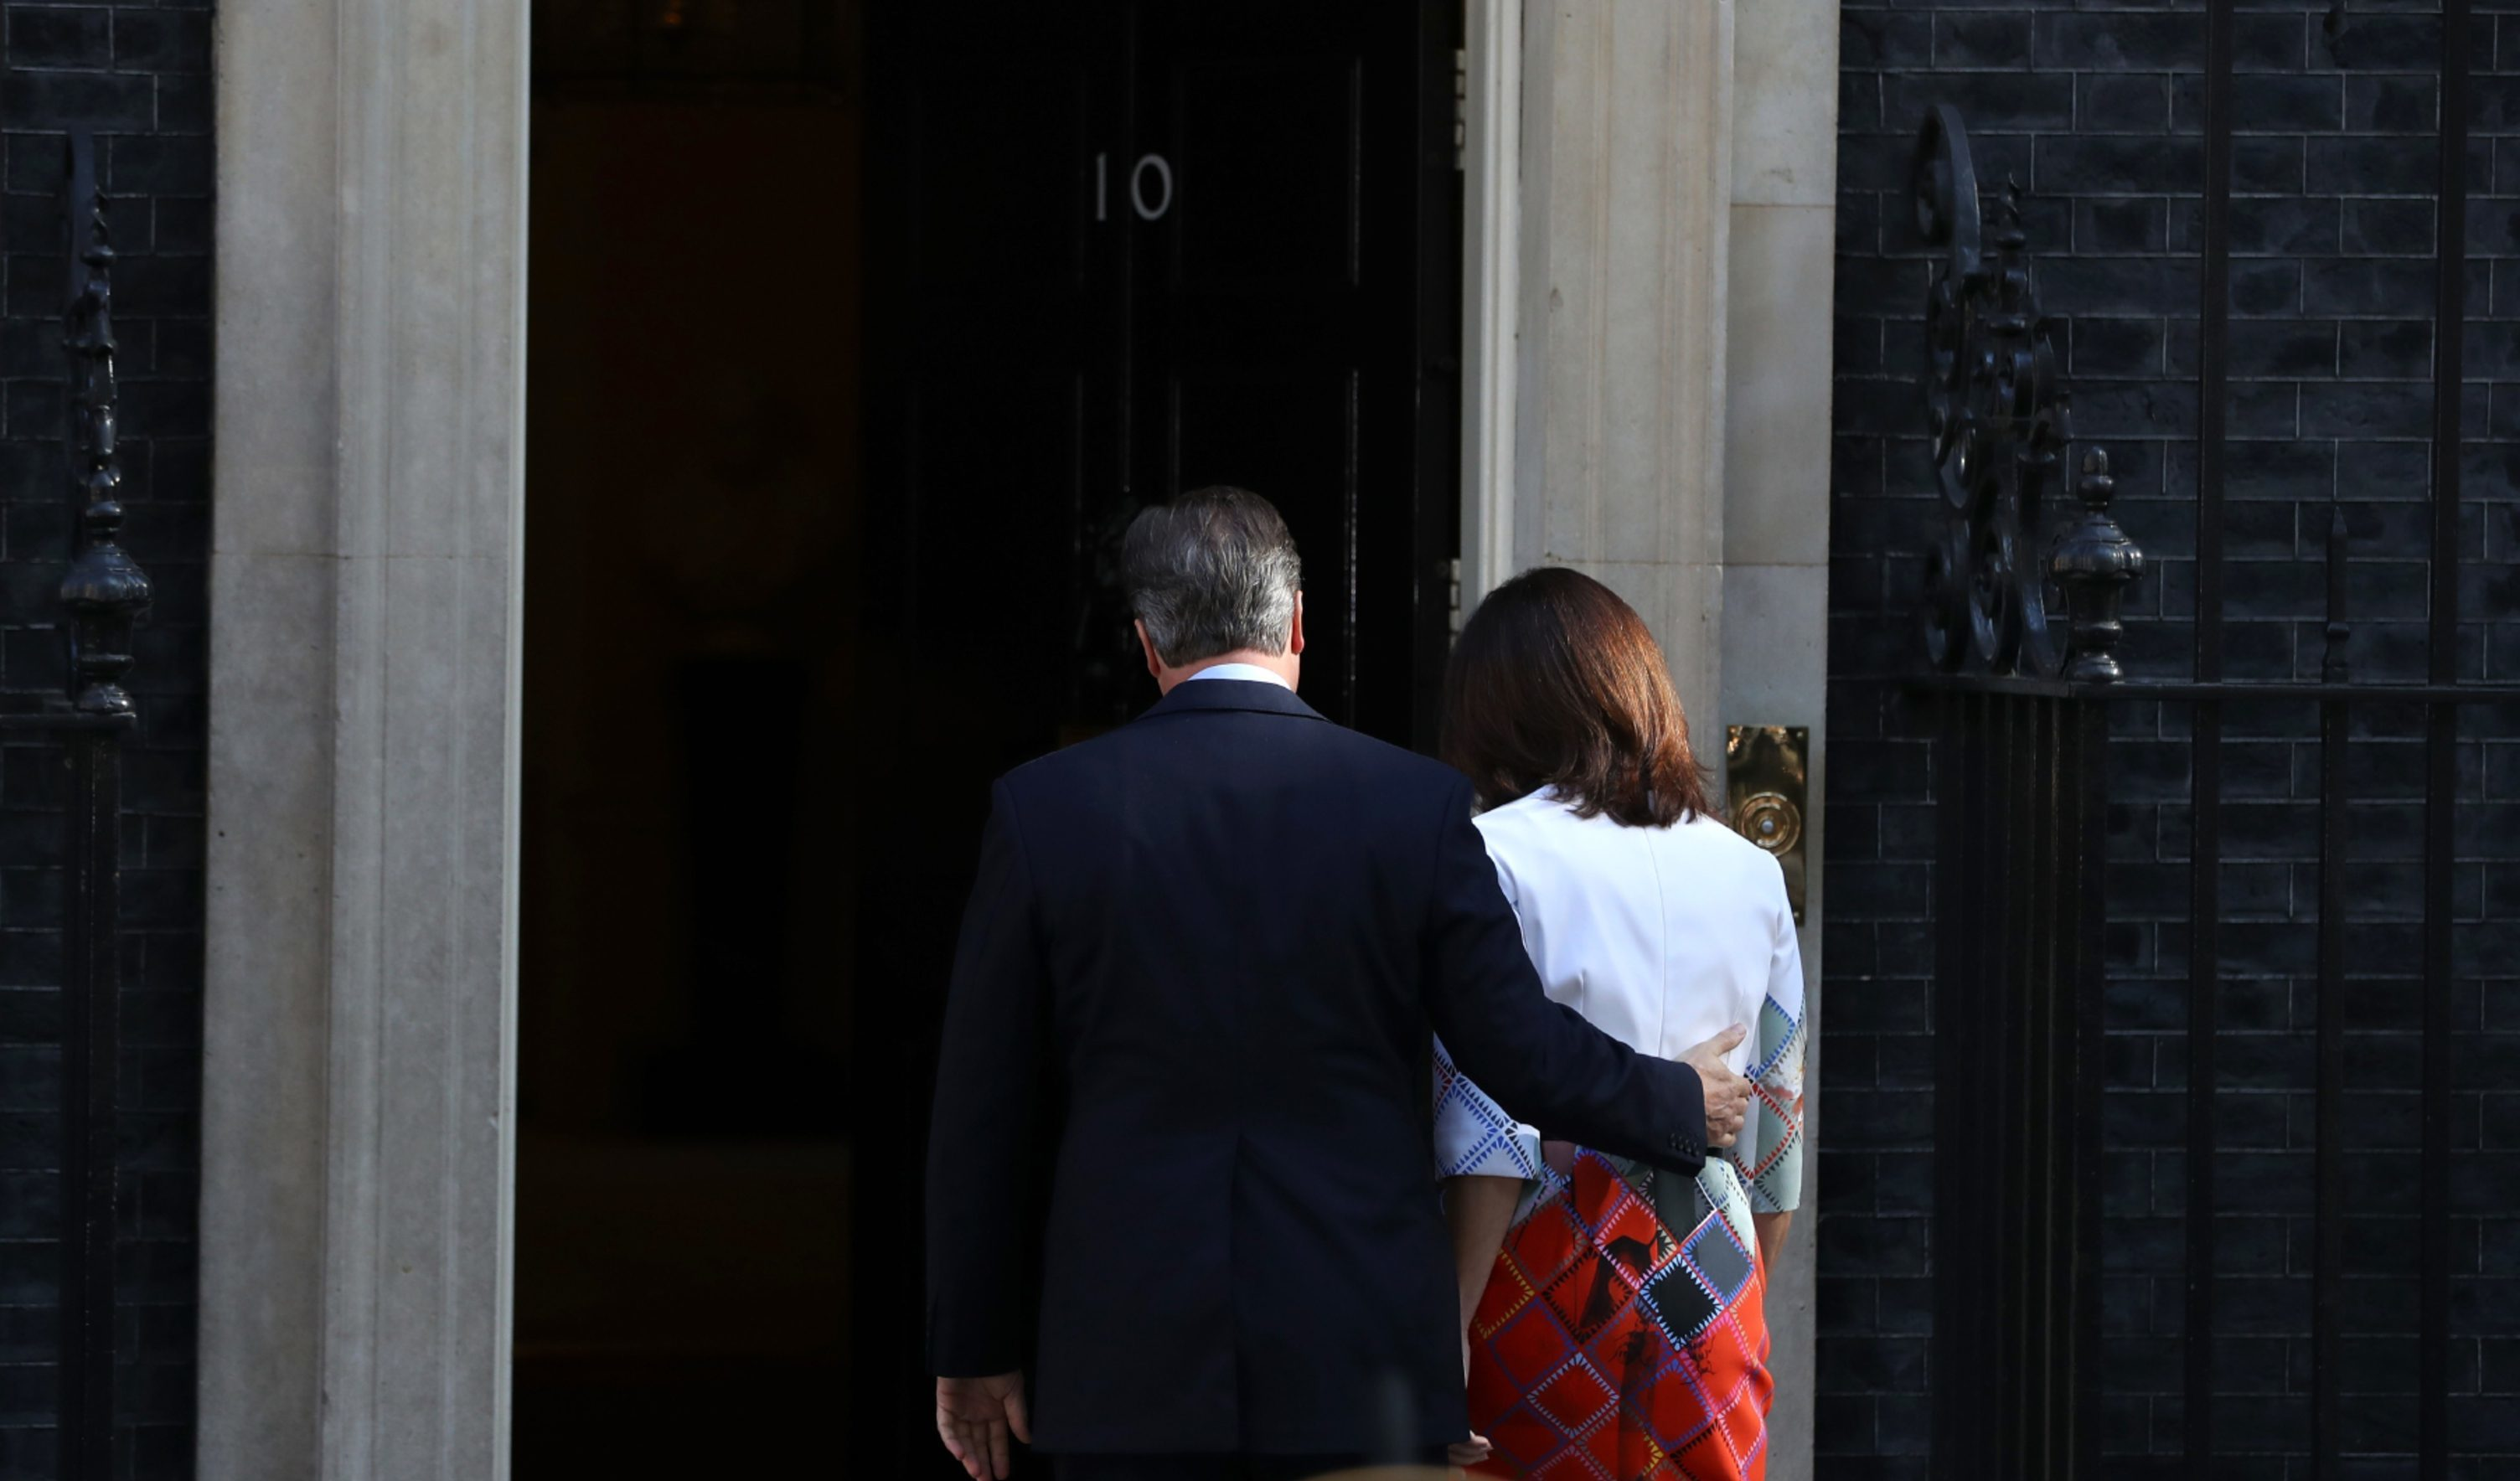 David Cameron and wife Samantha head back into 10 Downing Street after he announced his intention to resign.